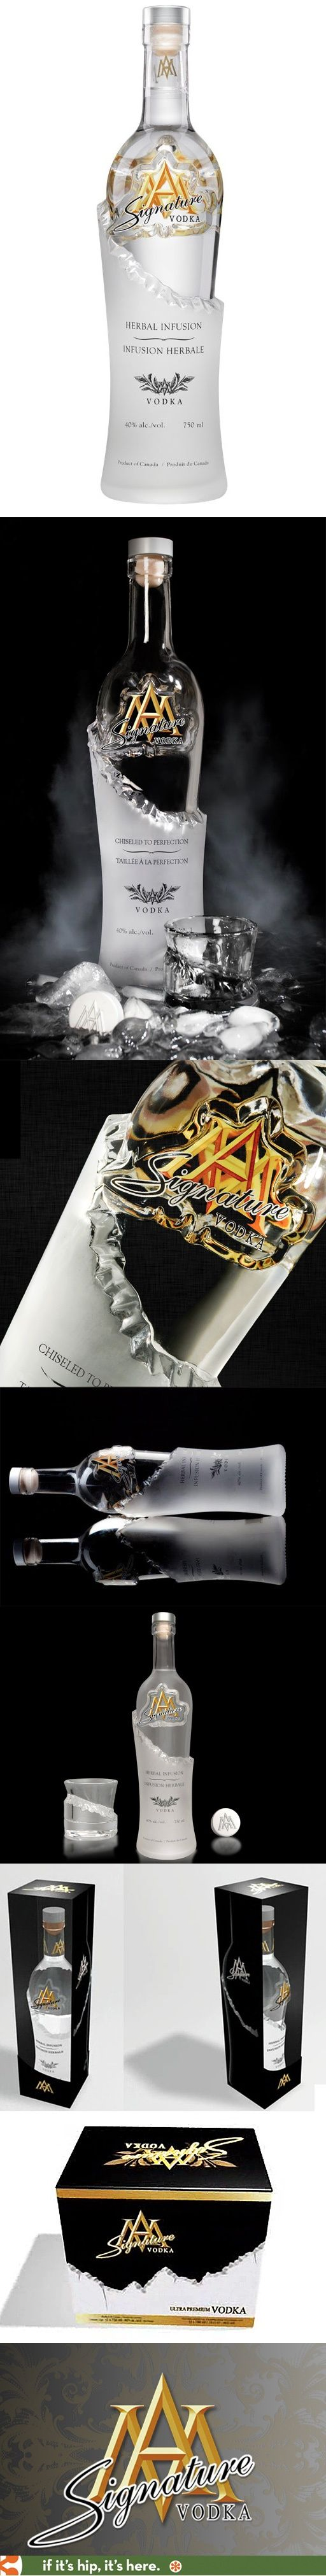 """""""Signature Vodka (herbal-infused) in an unusual chiseled bottle design."""""""